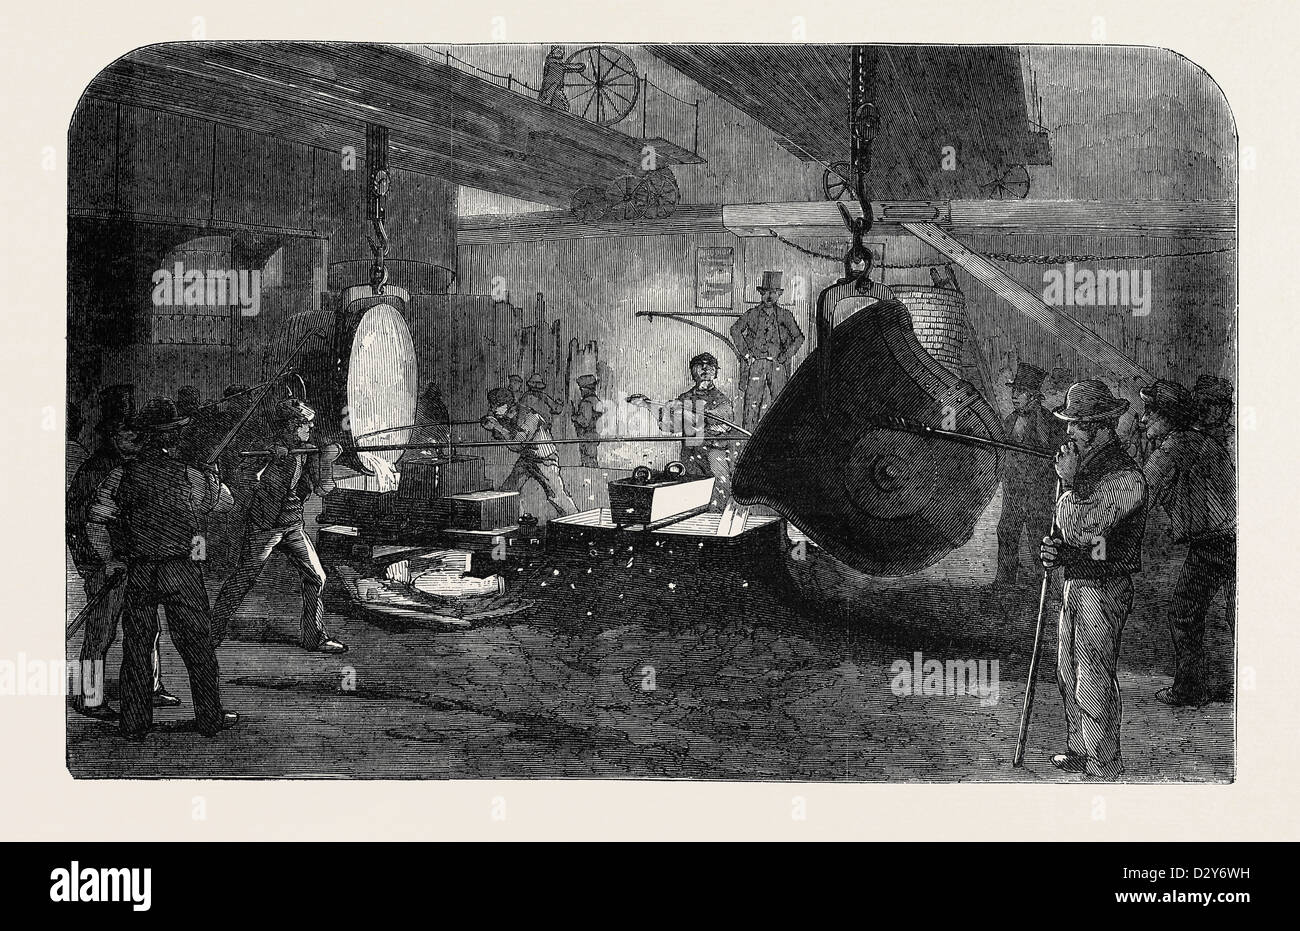 MORTAR CASTING, AT THE REGENT'S CANAL IRONWORKS Stock Photo